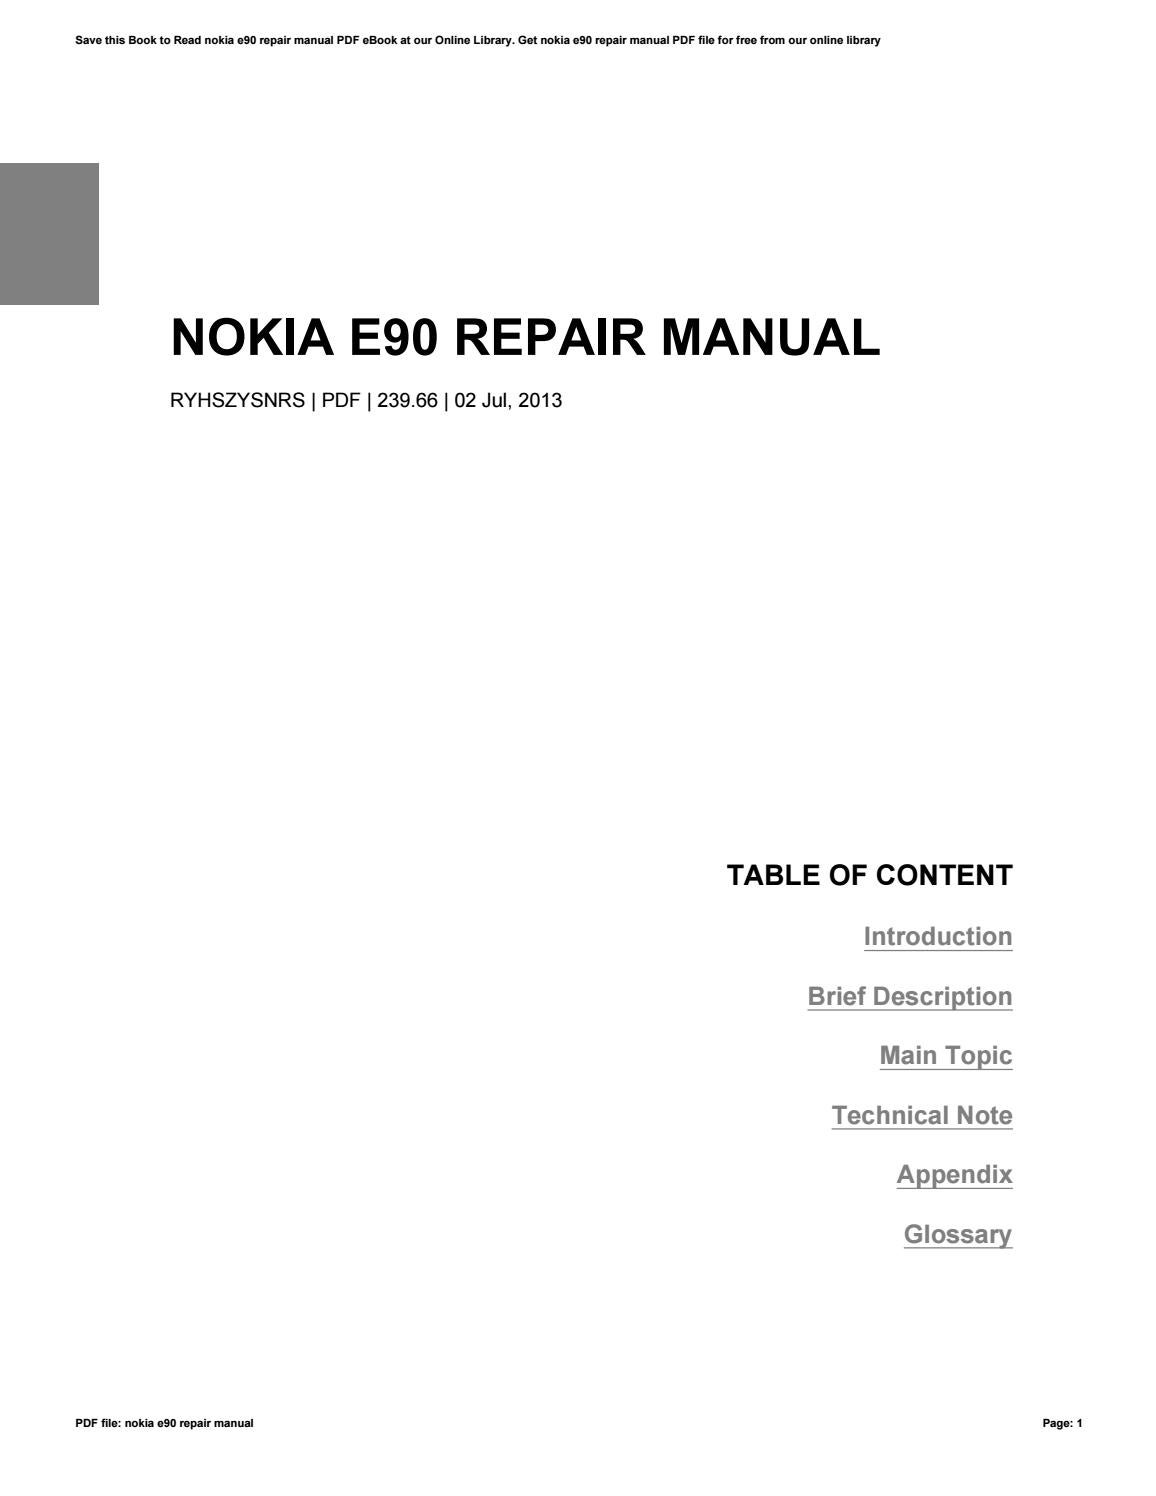 Nokia E90 Manual Scaled Downquot And Reliable 1 Race Car Wiring Diagram Emprendedorlink Array Repair By Joe Issuu Rh